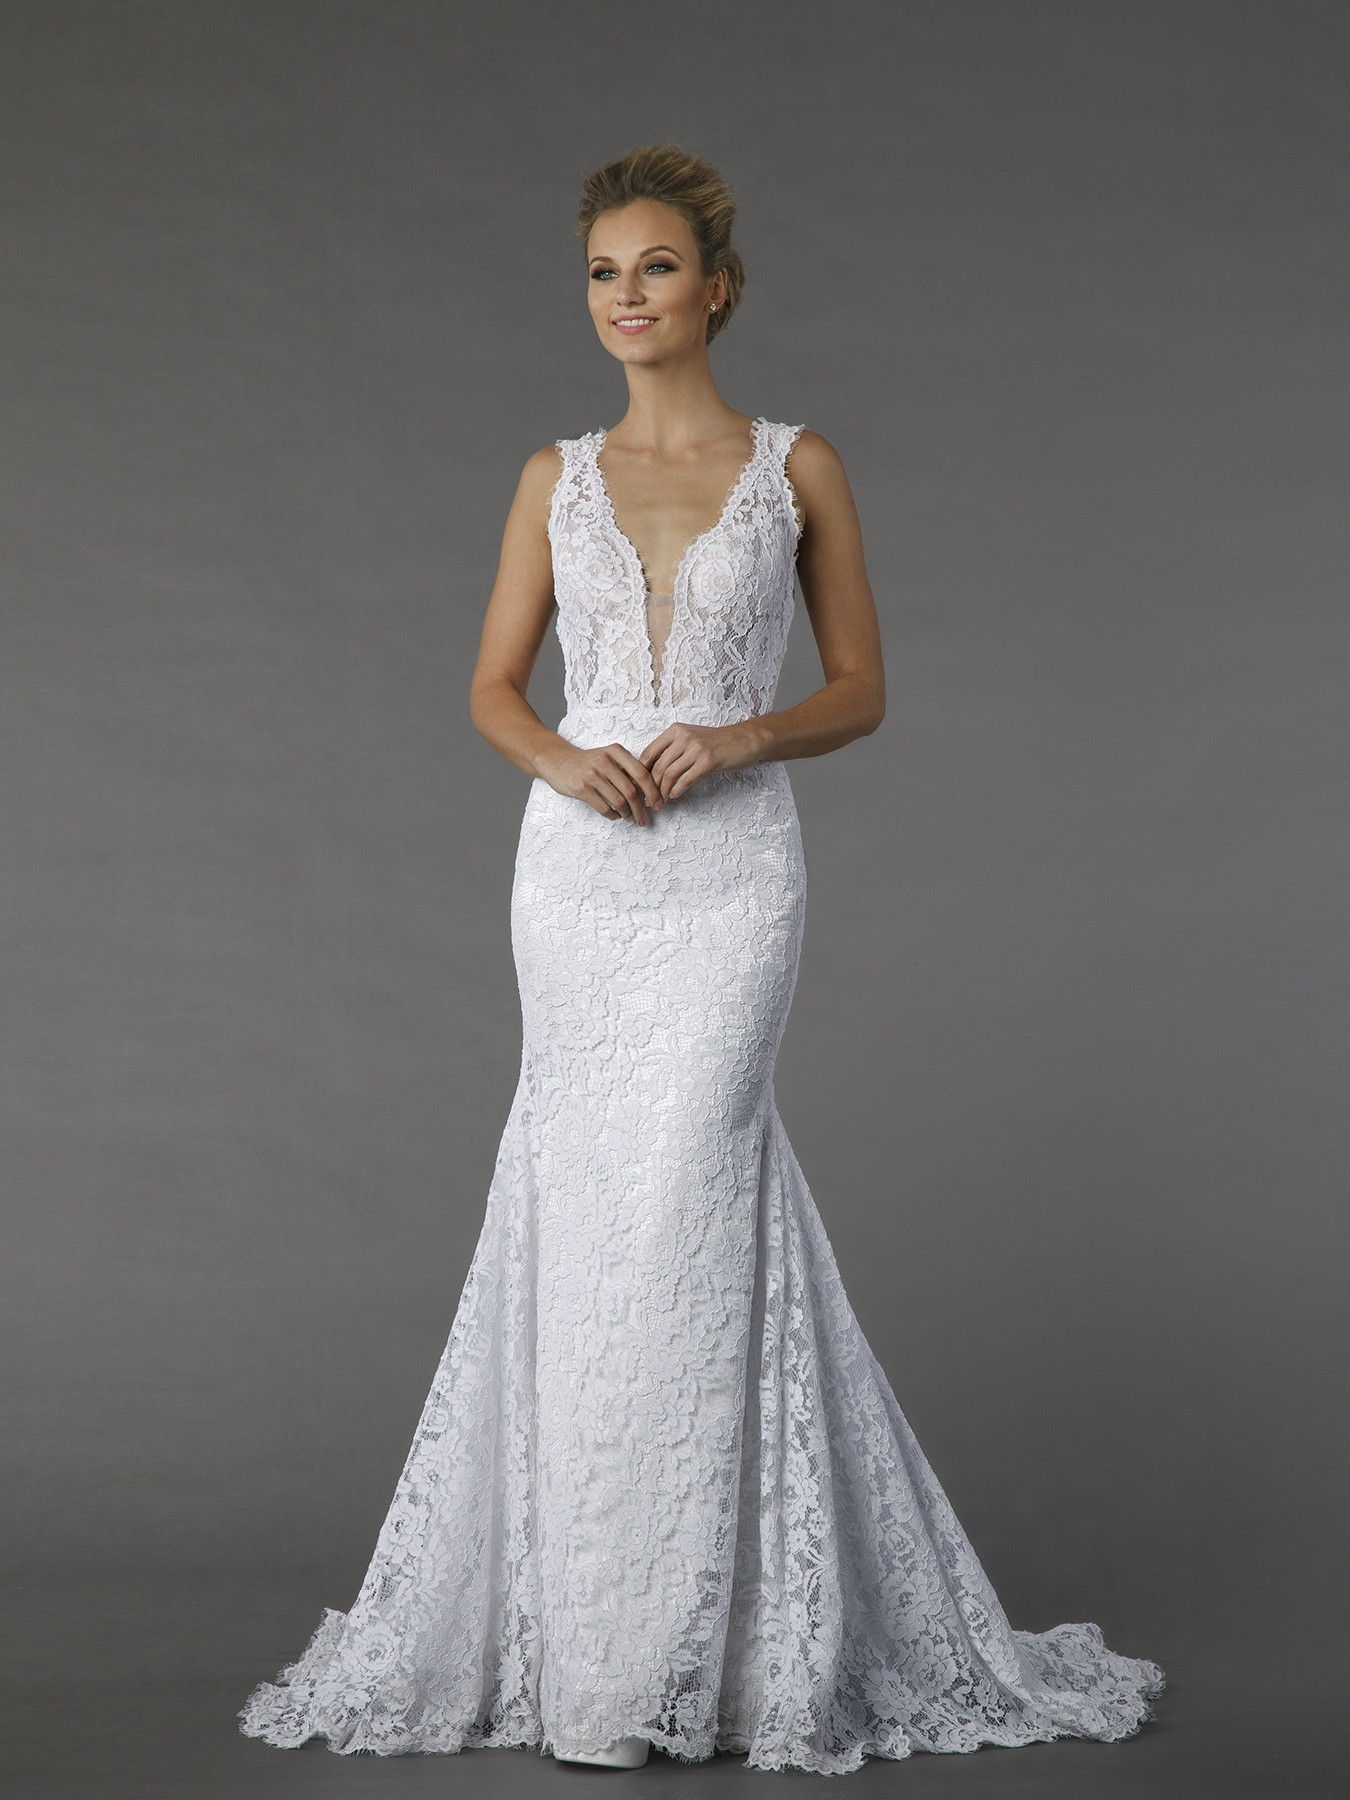 Pnina Tornai 4372 Sheath Wedding Dress By Kleinfeld. Strapless Wedding Dresses 2016. Cheap Wedding Dresses Nj. Wedding Dress Neckline Style. Most Beautiful Wedding Dresses 2015. Modern Fitted Wedding Dresses. Big Tummy Wedding Dresses. Vintage Inspired Wedding Dresses Nz. Wedding Dresses With Style